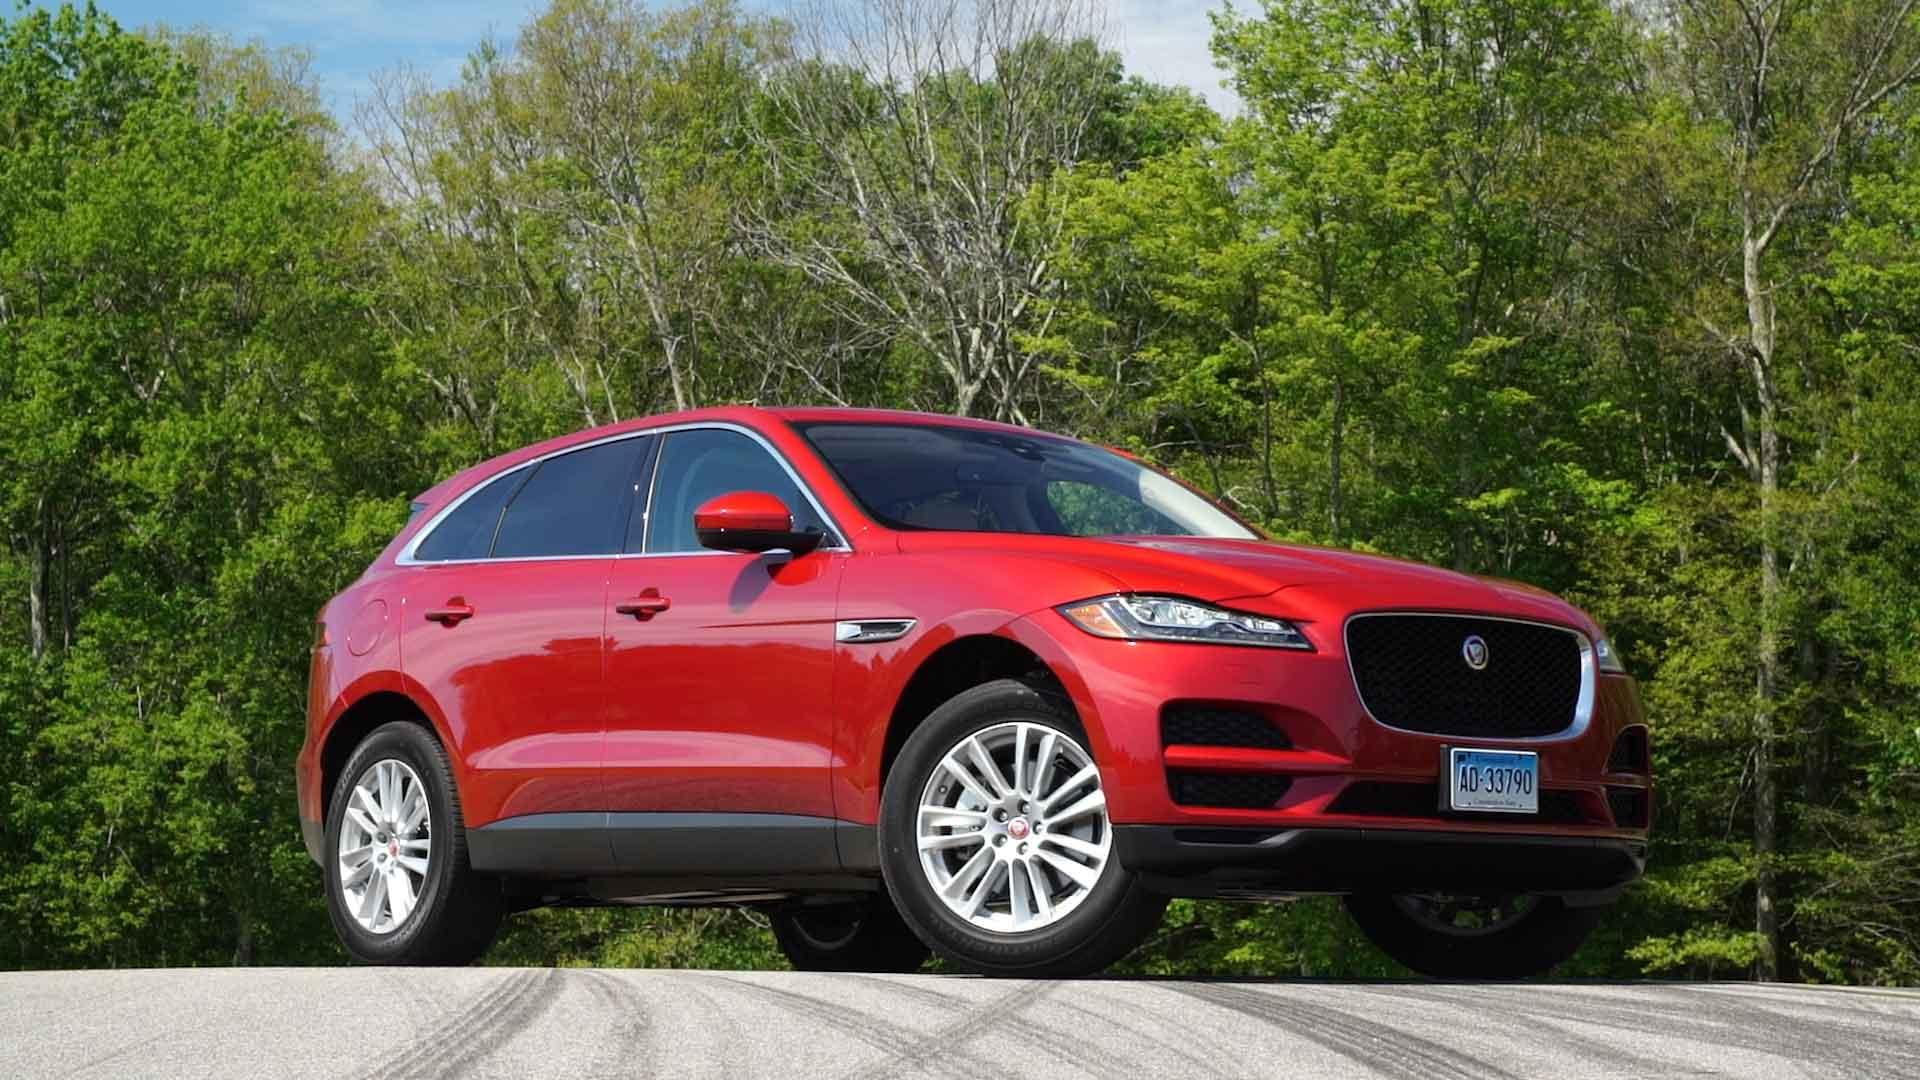 2017 Jaguar F Pace Suv Proves Luxurious And Sporty Consumer Reports